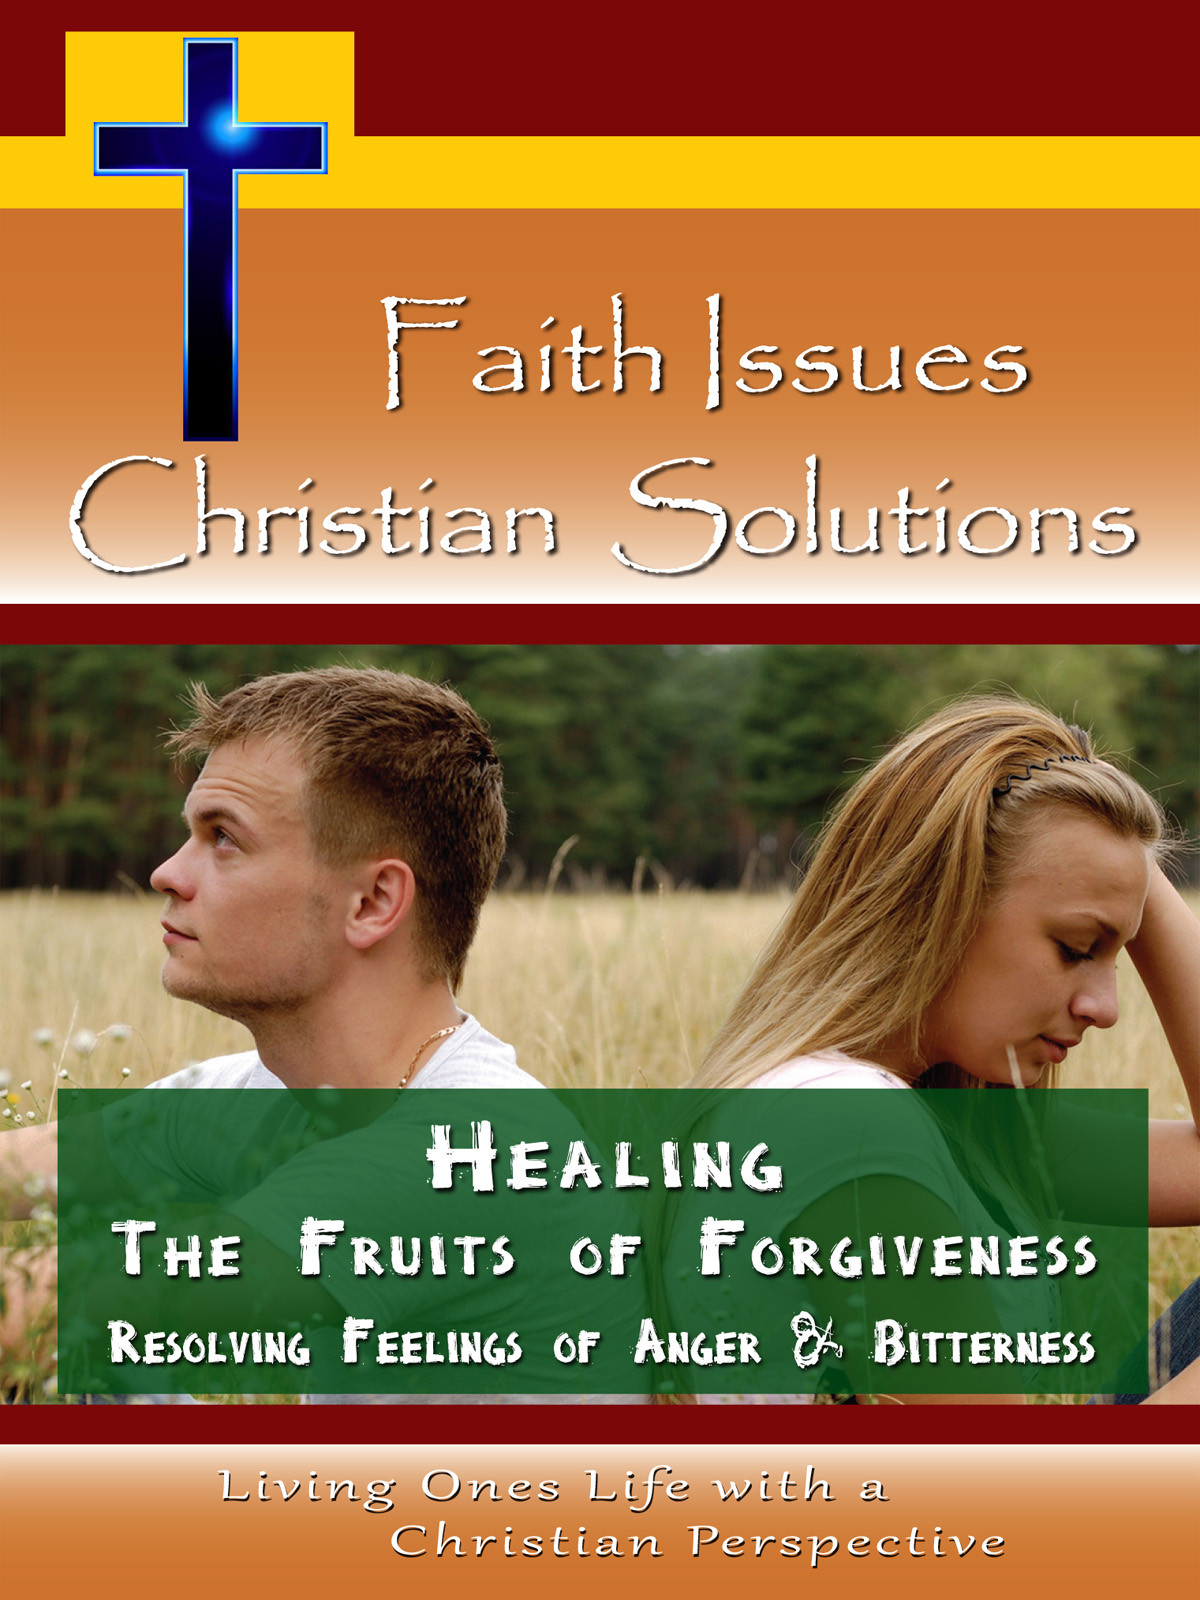 CH10019 - Healing The Fruits of Forgiveness Resolving Feelings of Anger & Bitterness